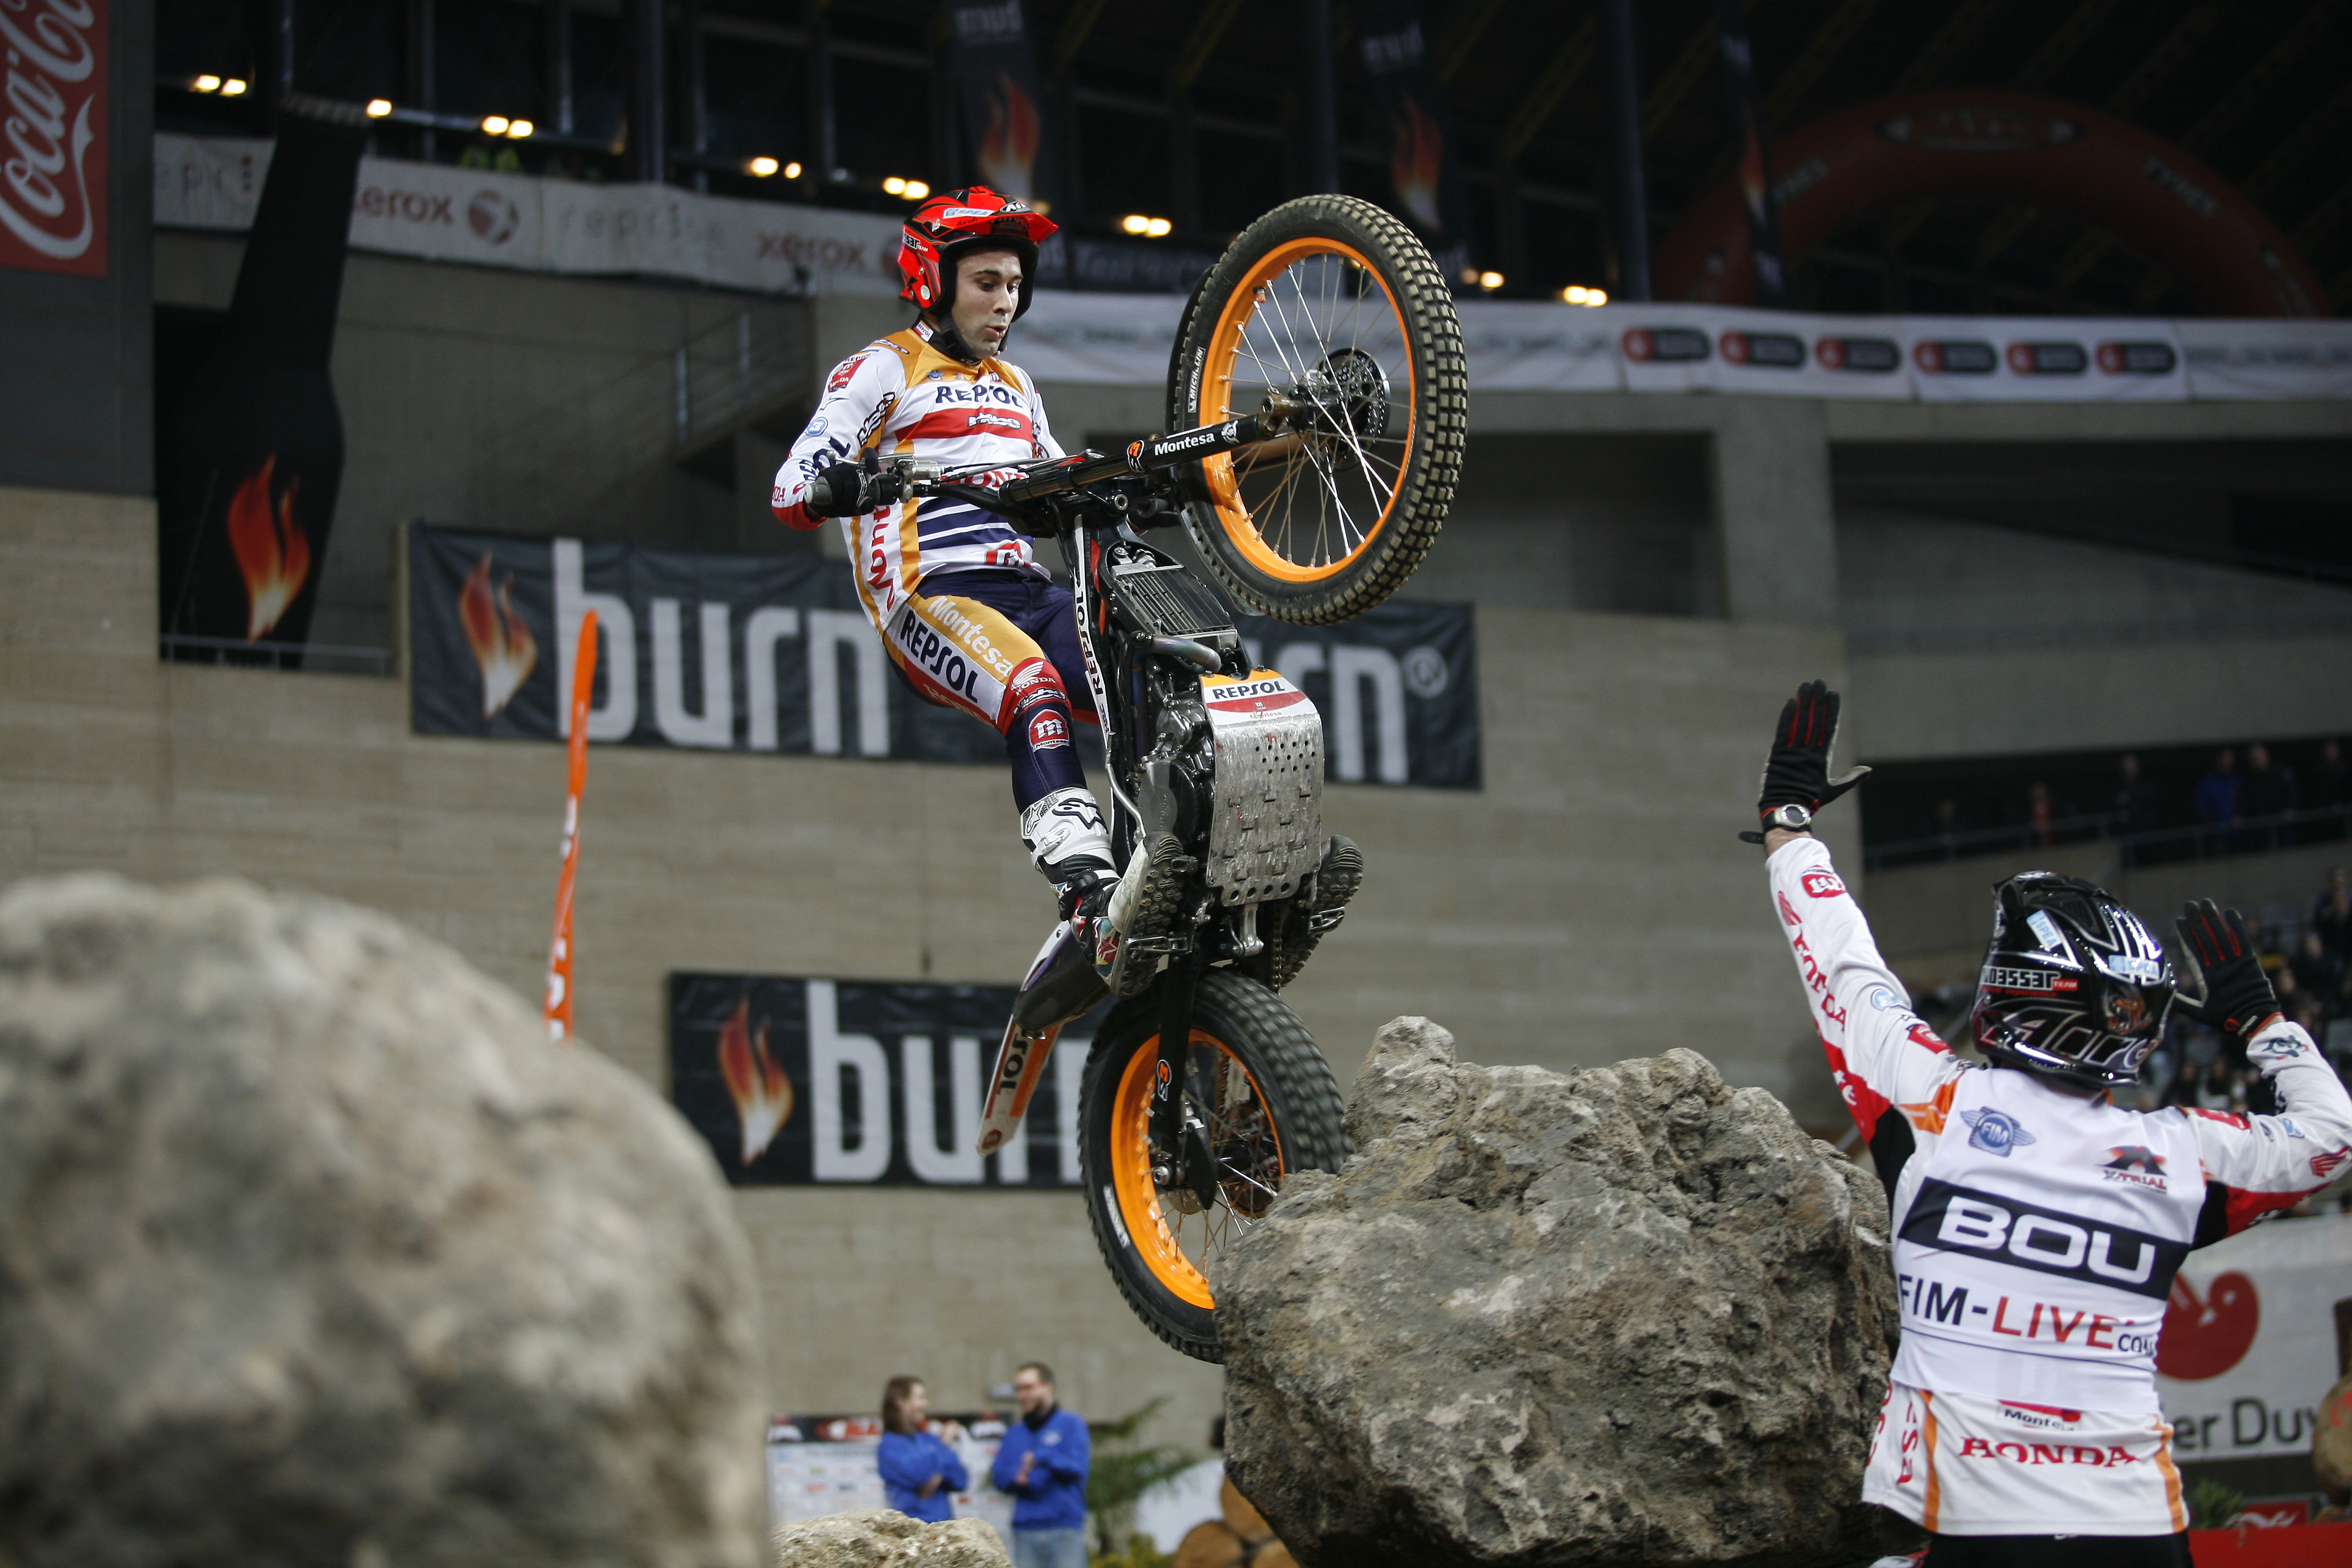 Toni Bou competing in 2015 X-Trial PHOTO: hondaracingcorporation